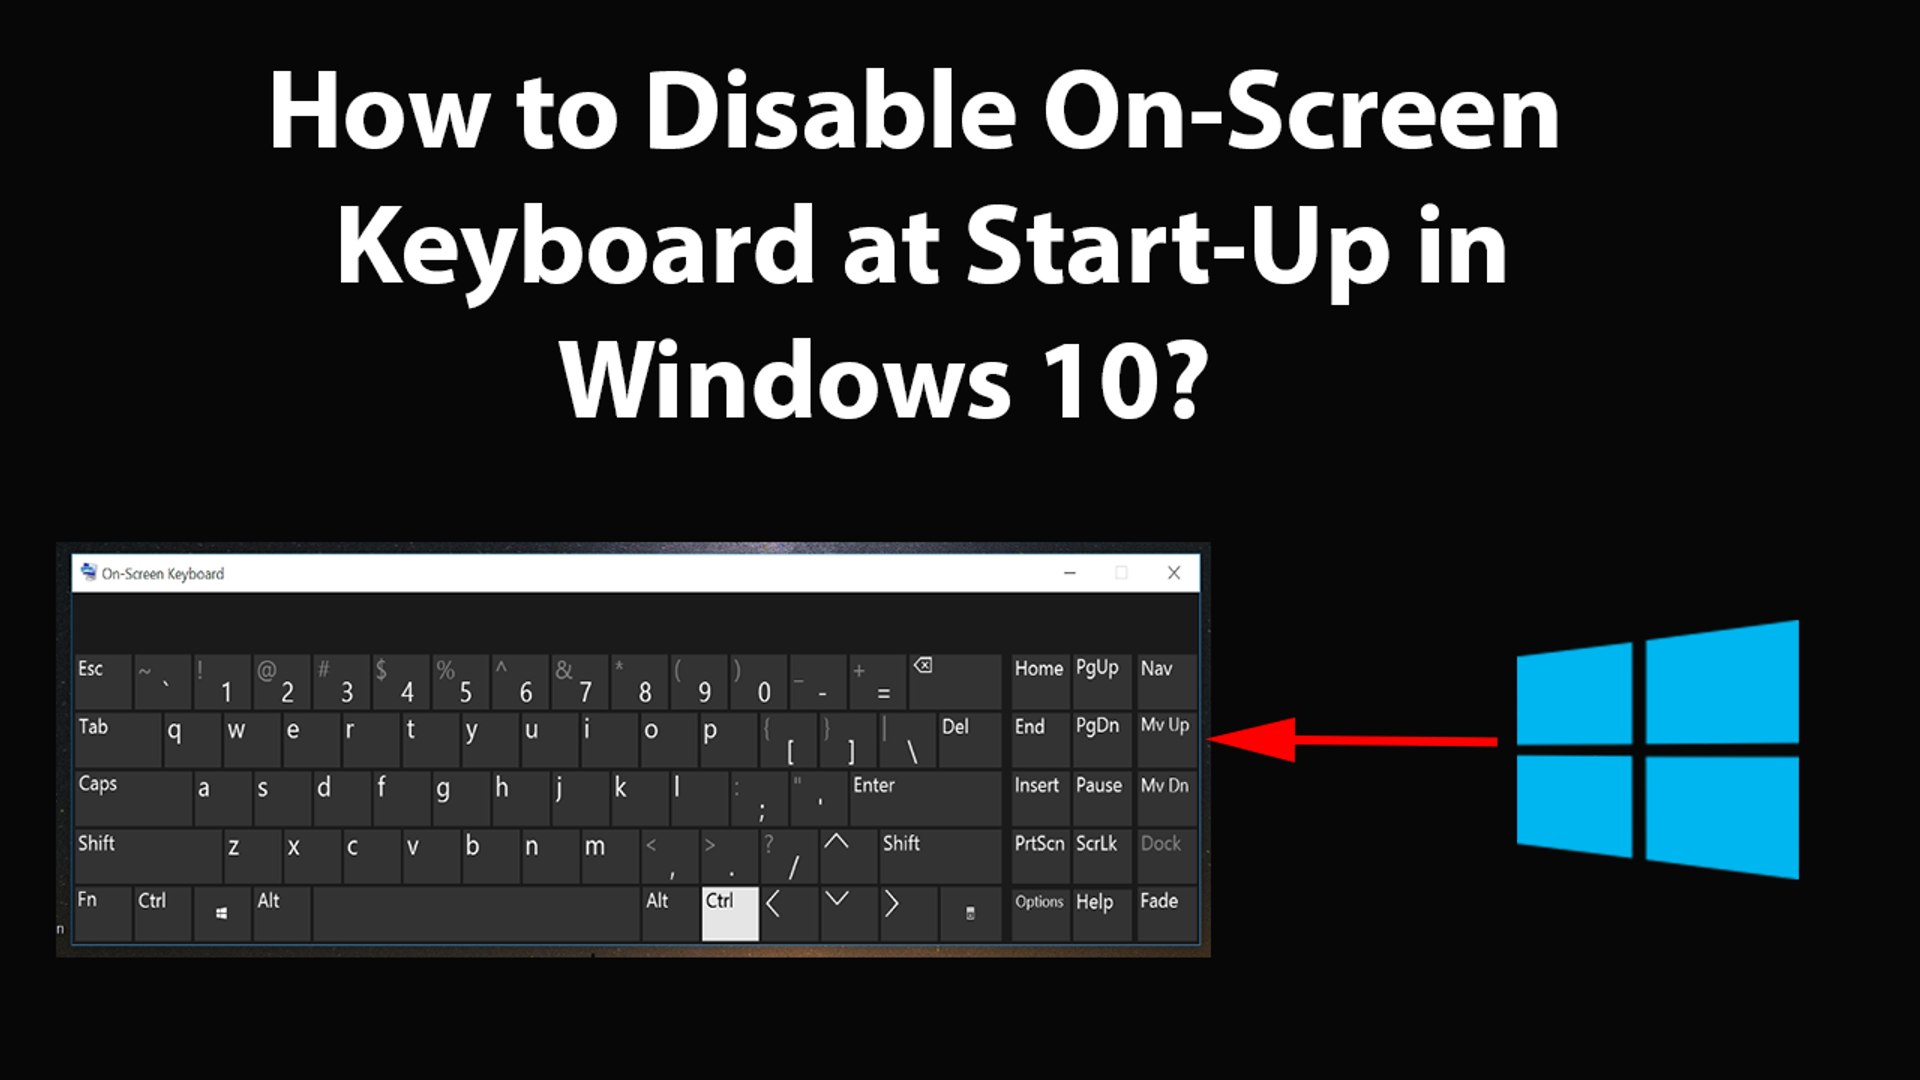 How to Disable On-Screen Keyboard at Start-Up in Windows 10?